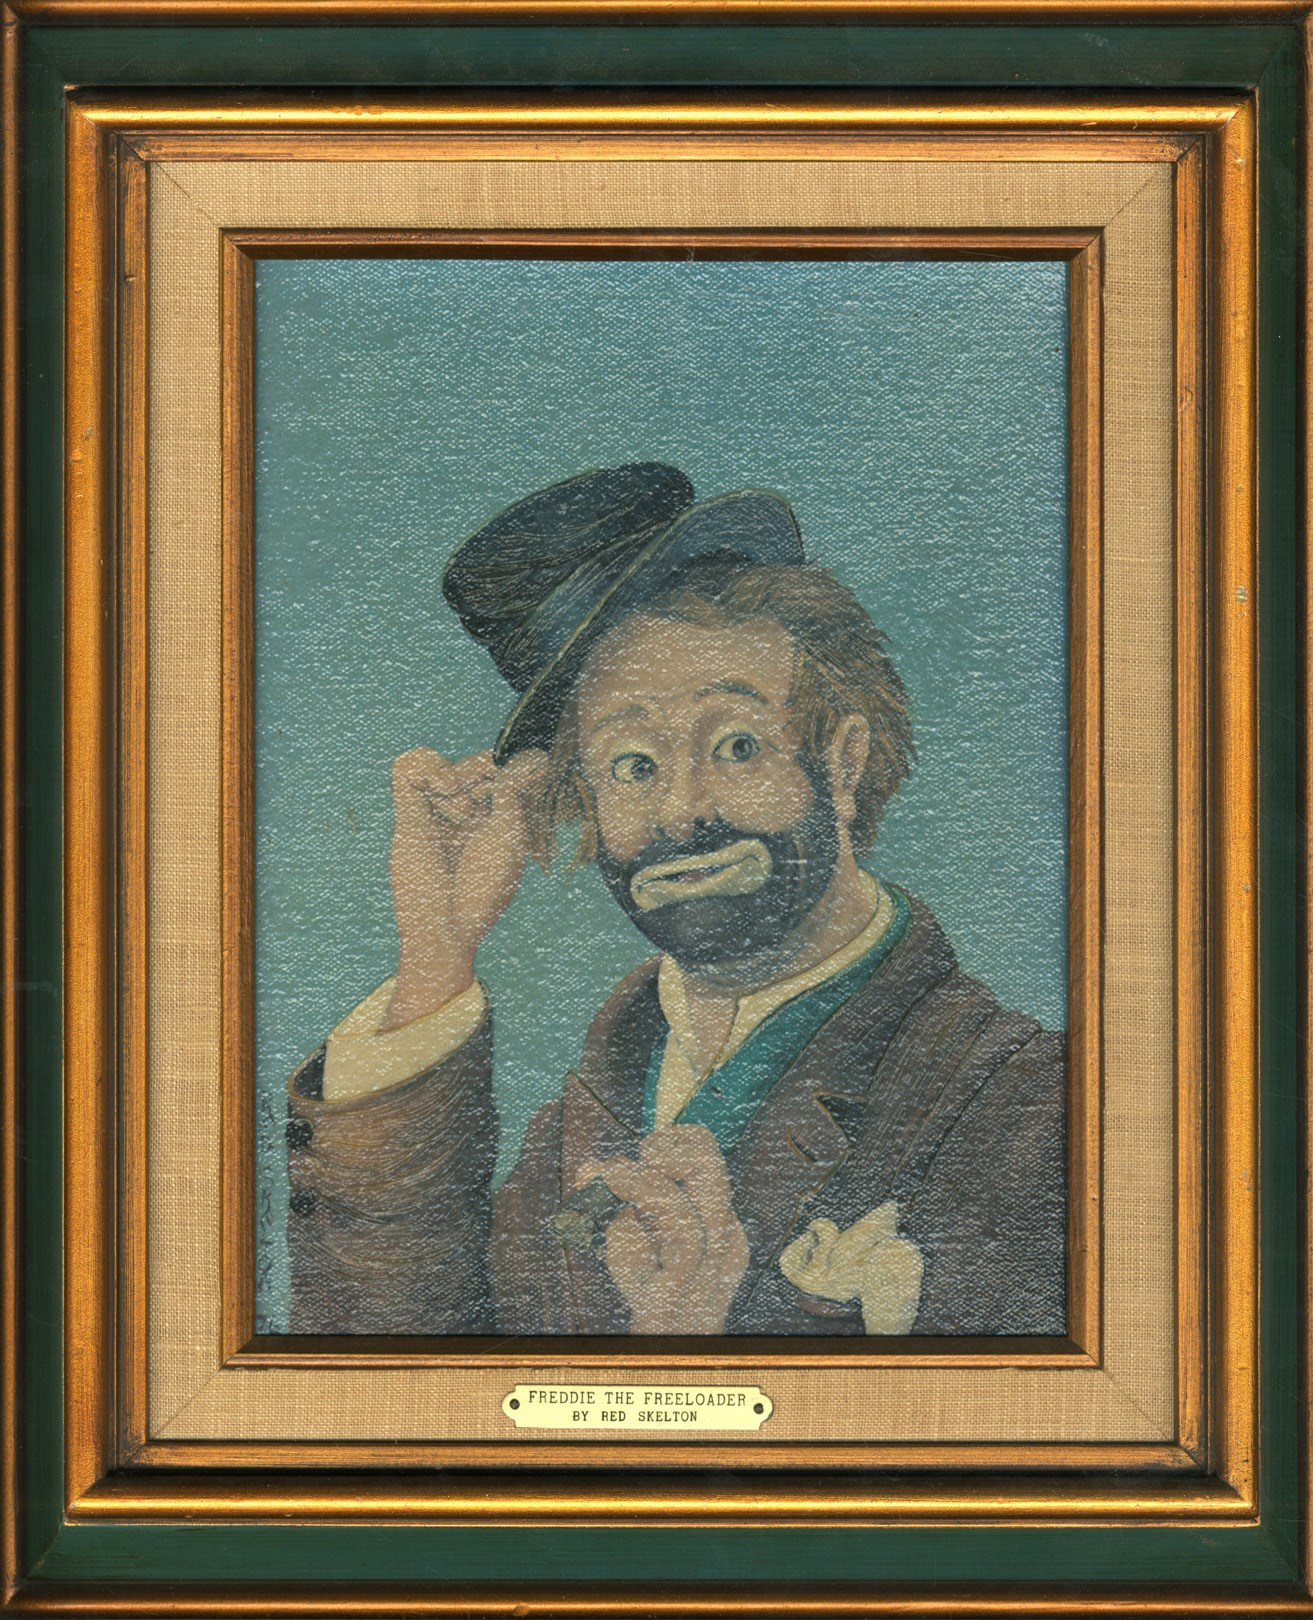 The Emmett Kelly Collection - Leland's Classic